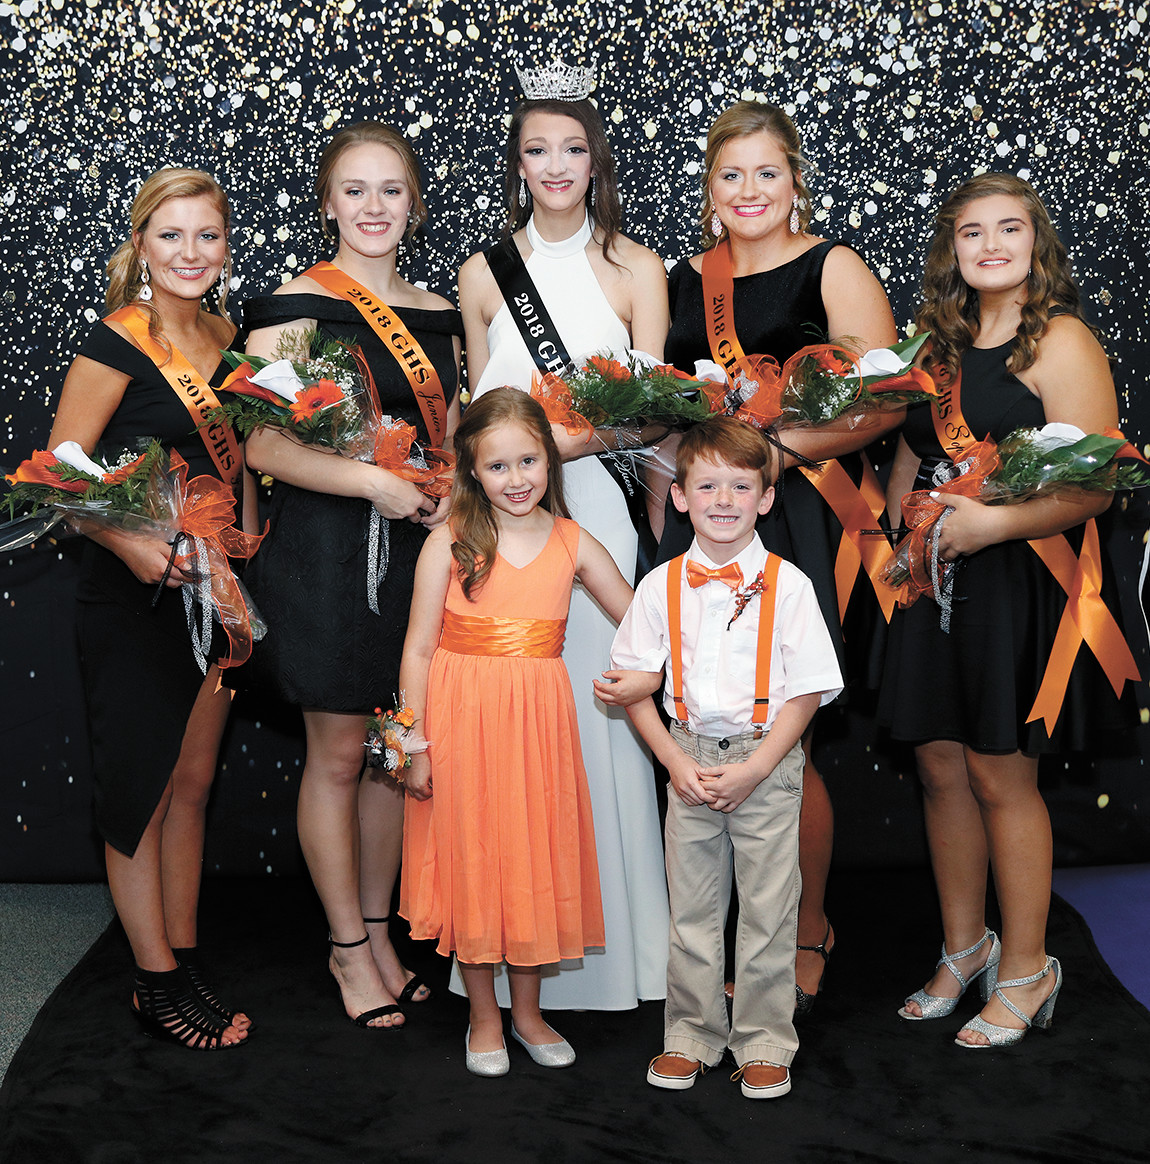 Freshman Maid Darcie Bell, daughter of David and Hollie Bell; Junior Maid Martha Nichols, daughter of Denise Connell; Queen Hannah Whitworth, daughter of Jeff and Roni Whitworth; Senior Maid Bailey Bandy, daughter of Brandon and Nicky Bailey; and Sophomore Maid Lexia Snider, daughter of Anna and David Stout. The flower girl was Emma Pettit, daughter of Eric and Jennifer Pettit and the crown bearer was Gus Lindsey, son of Ryan and Candance Lindsey.